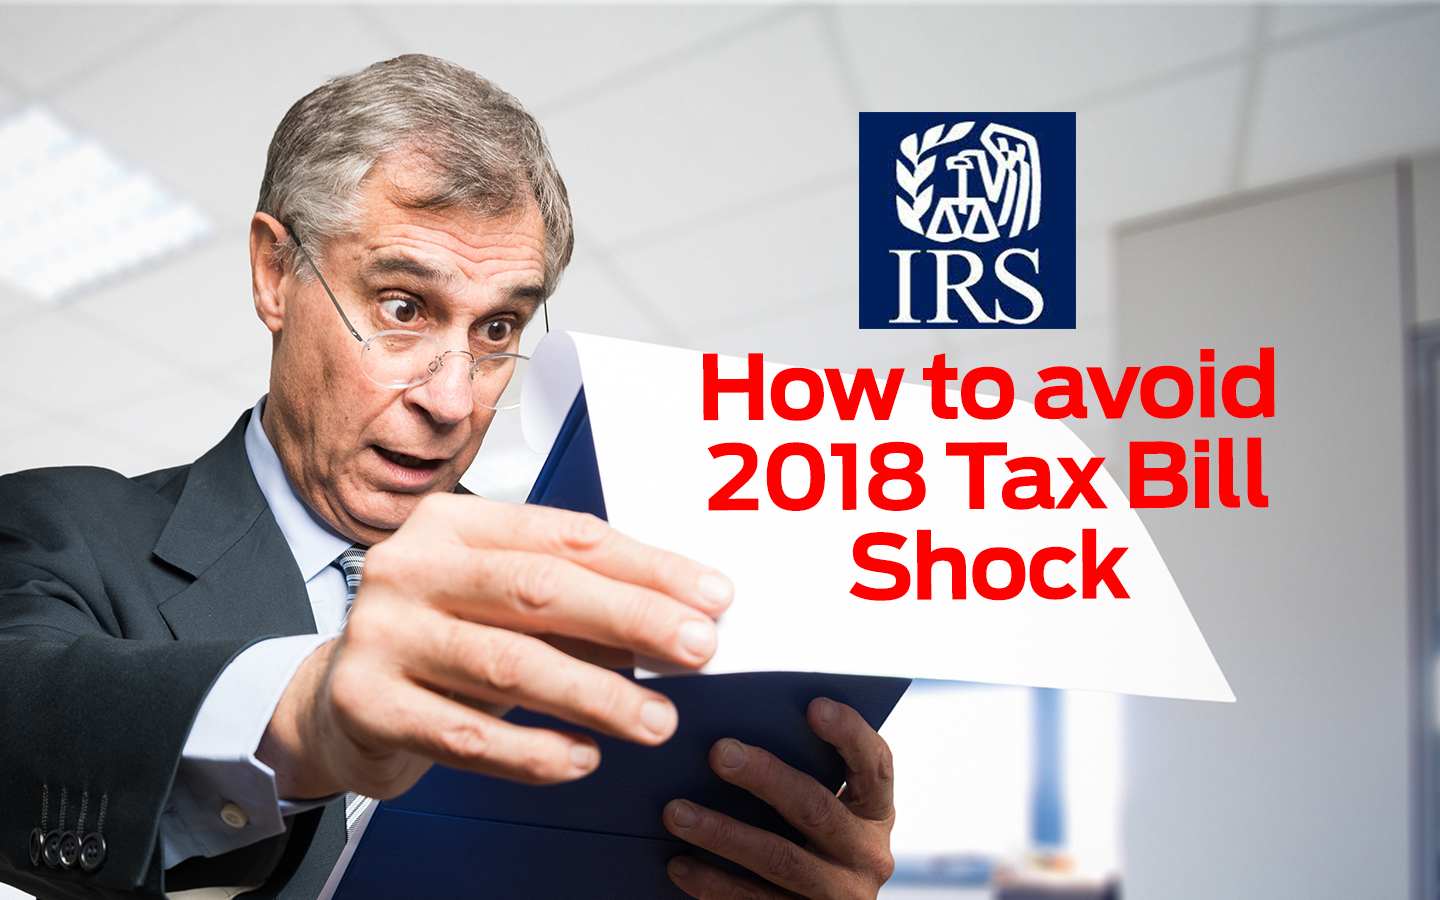 5 Critical Steps to Take Now to Avoid 2018 Tax Sticker Shock